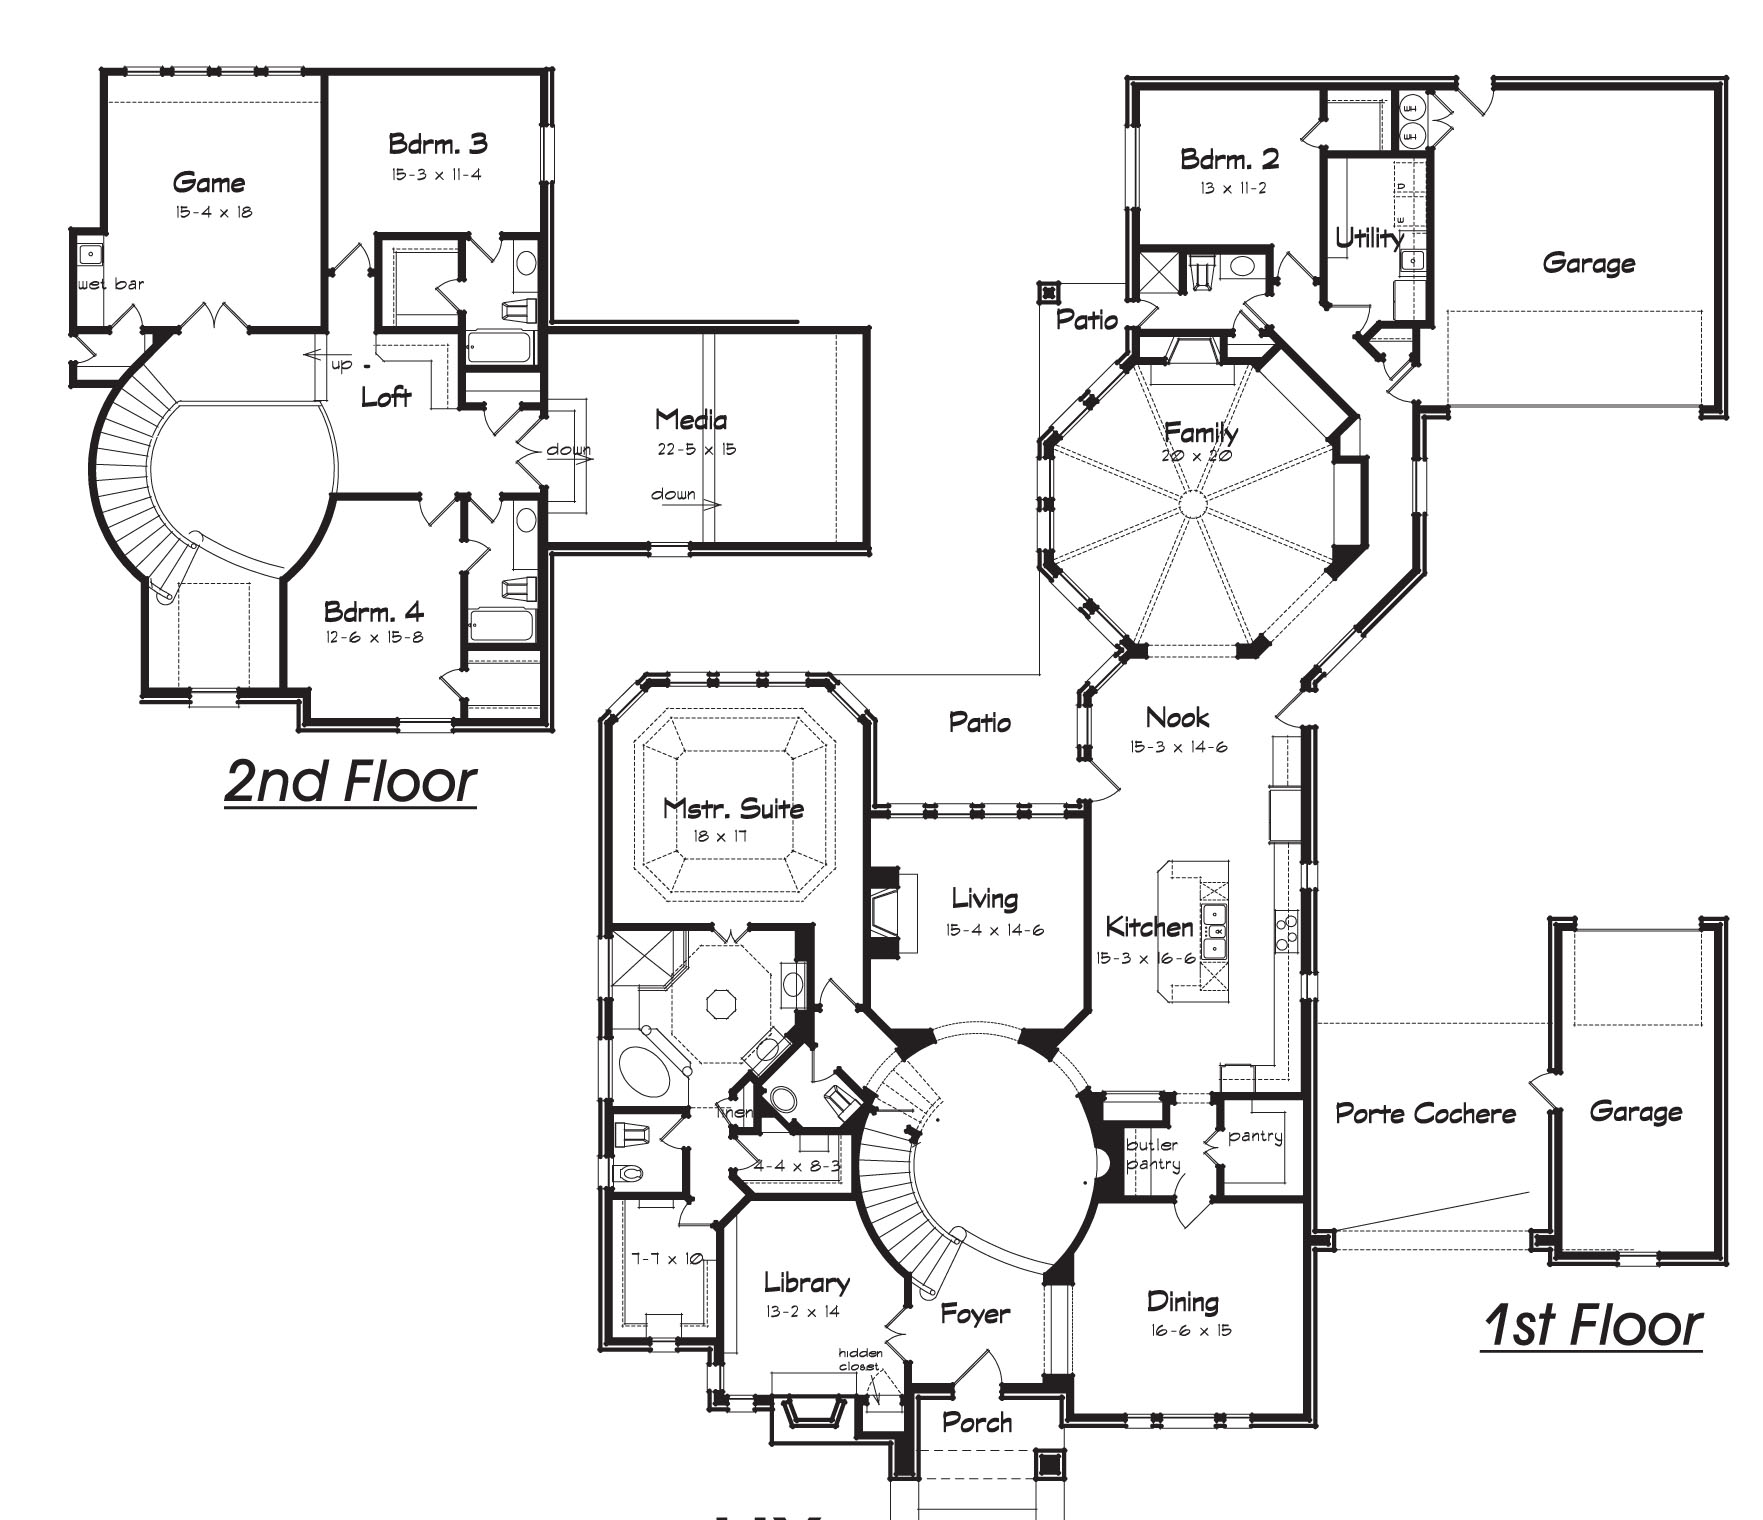 House plans with hidden rooms home decorating ideas for Best house designs 2012